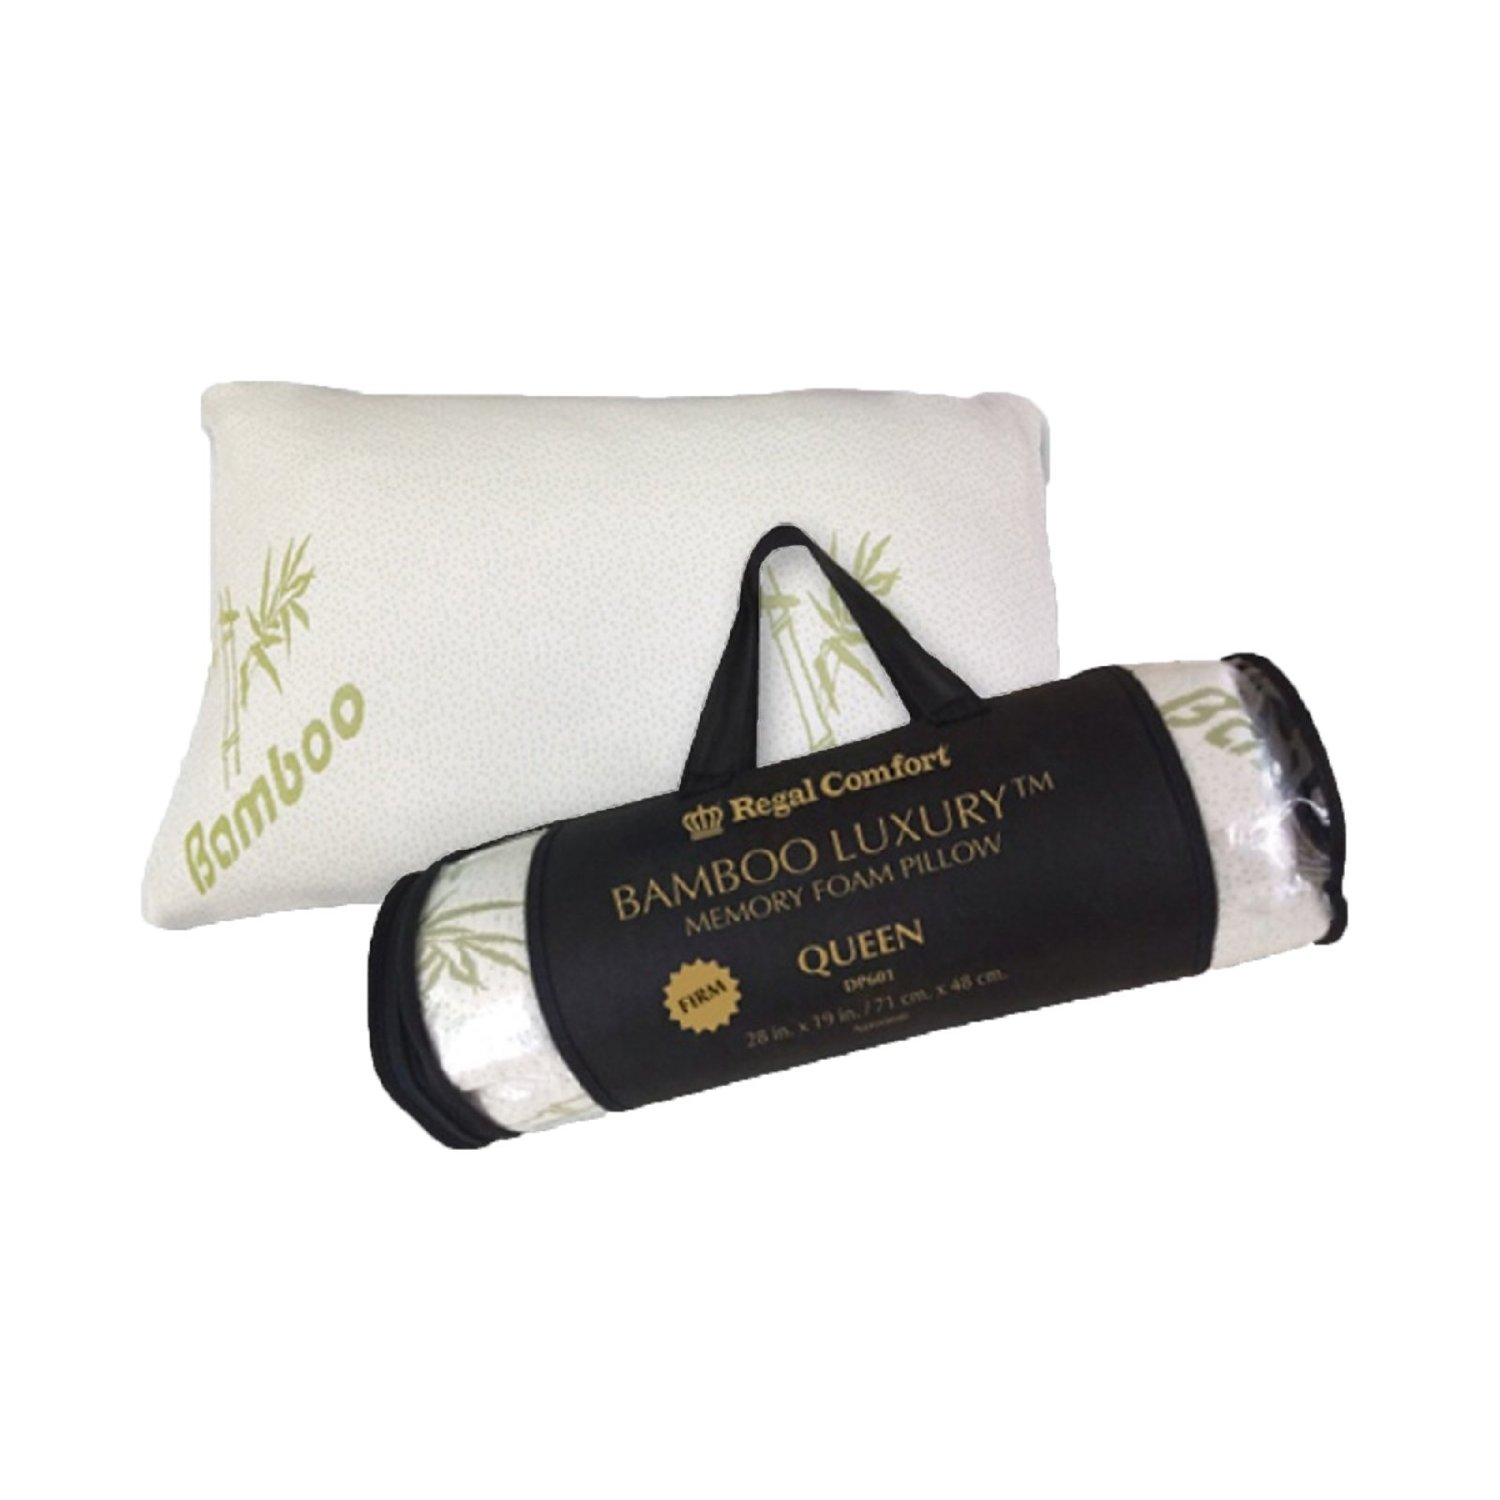 Regal Comfort Bamboo Memory Foam Bed Pillow Review